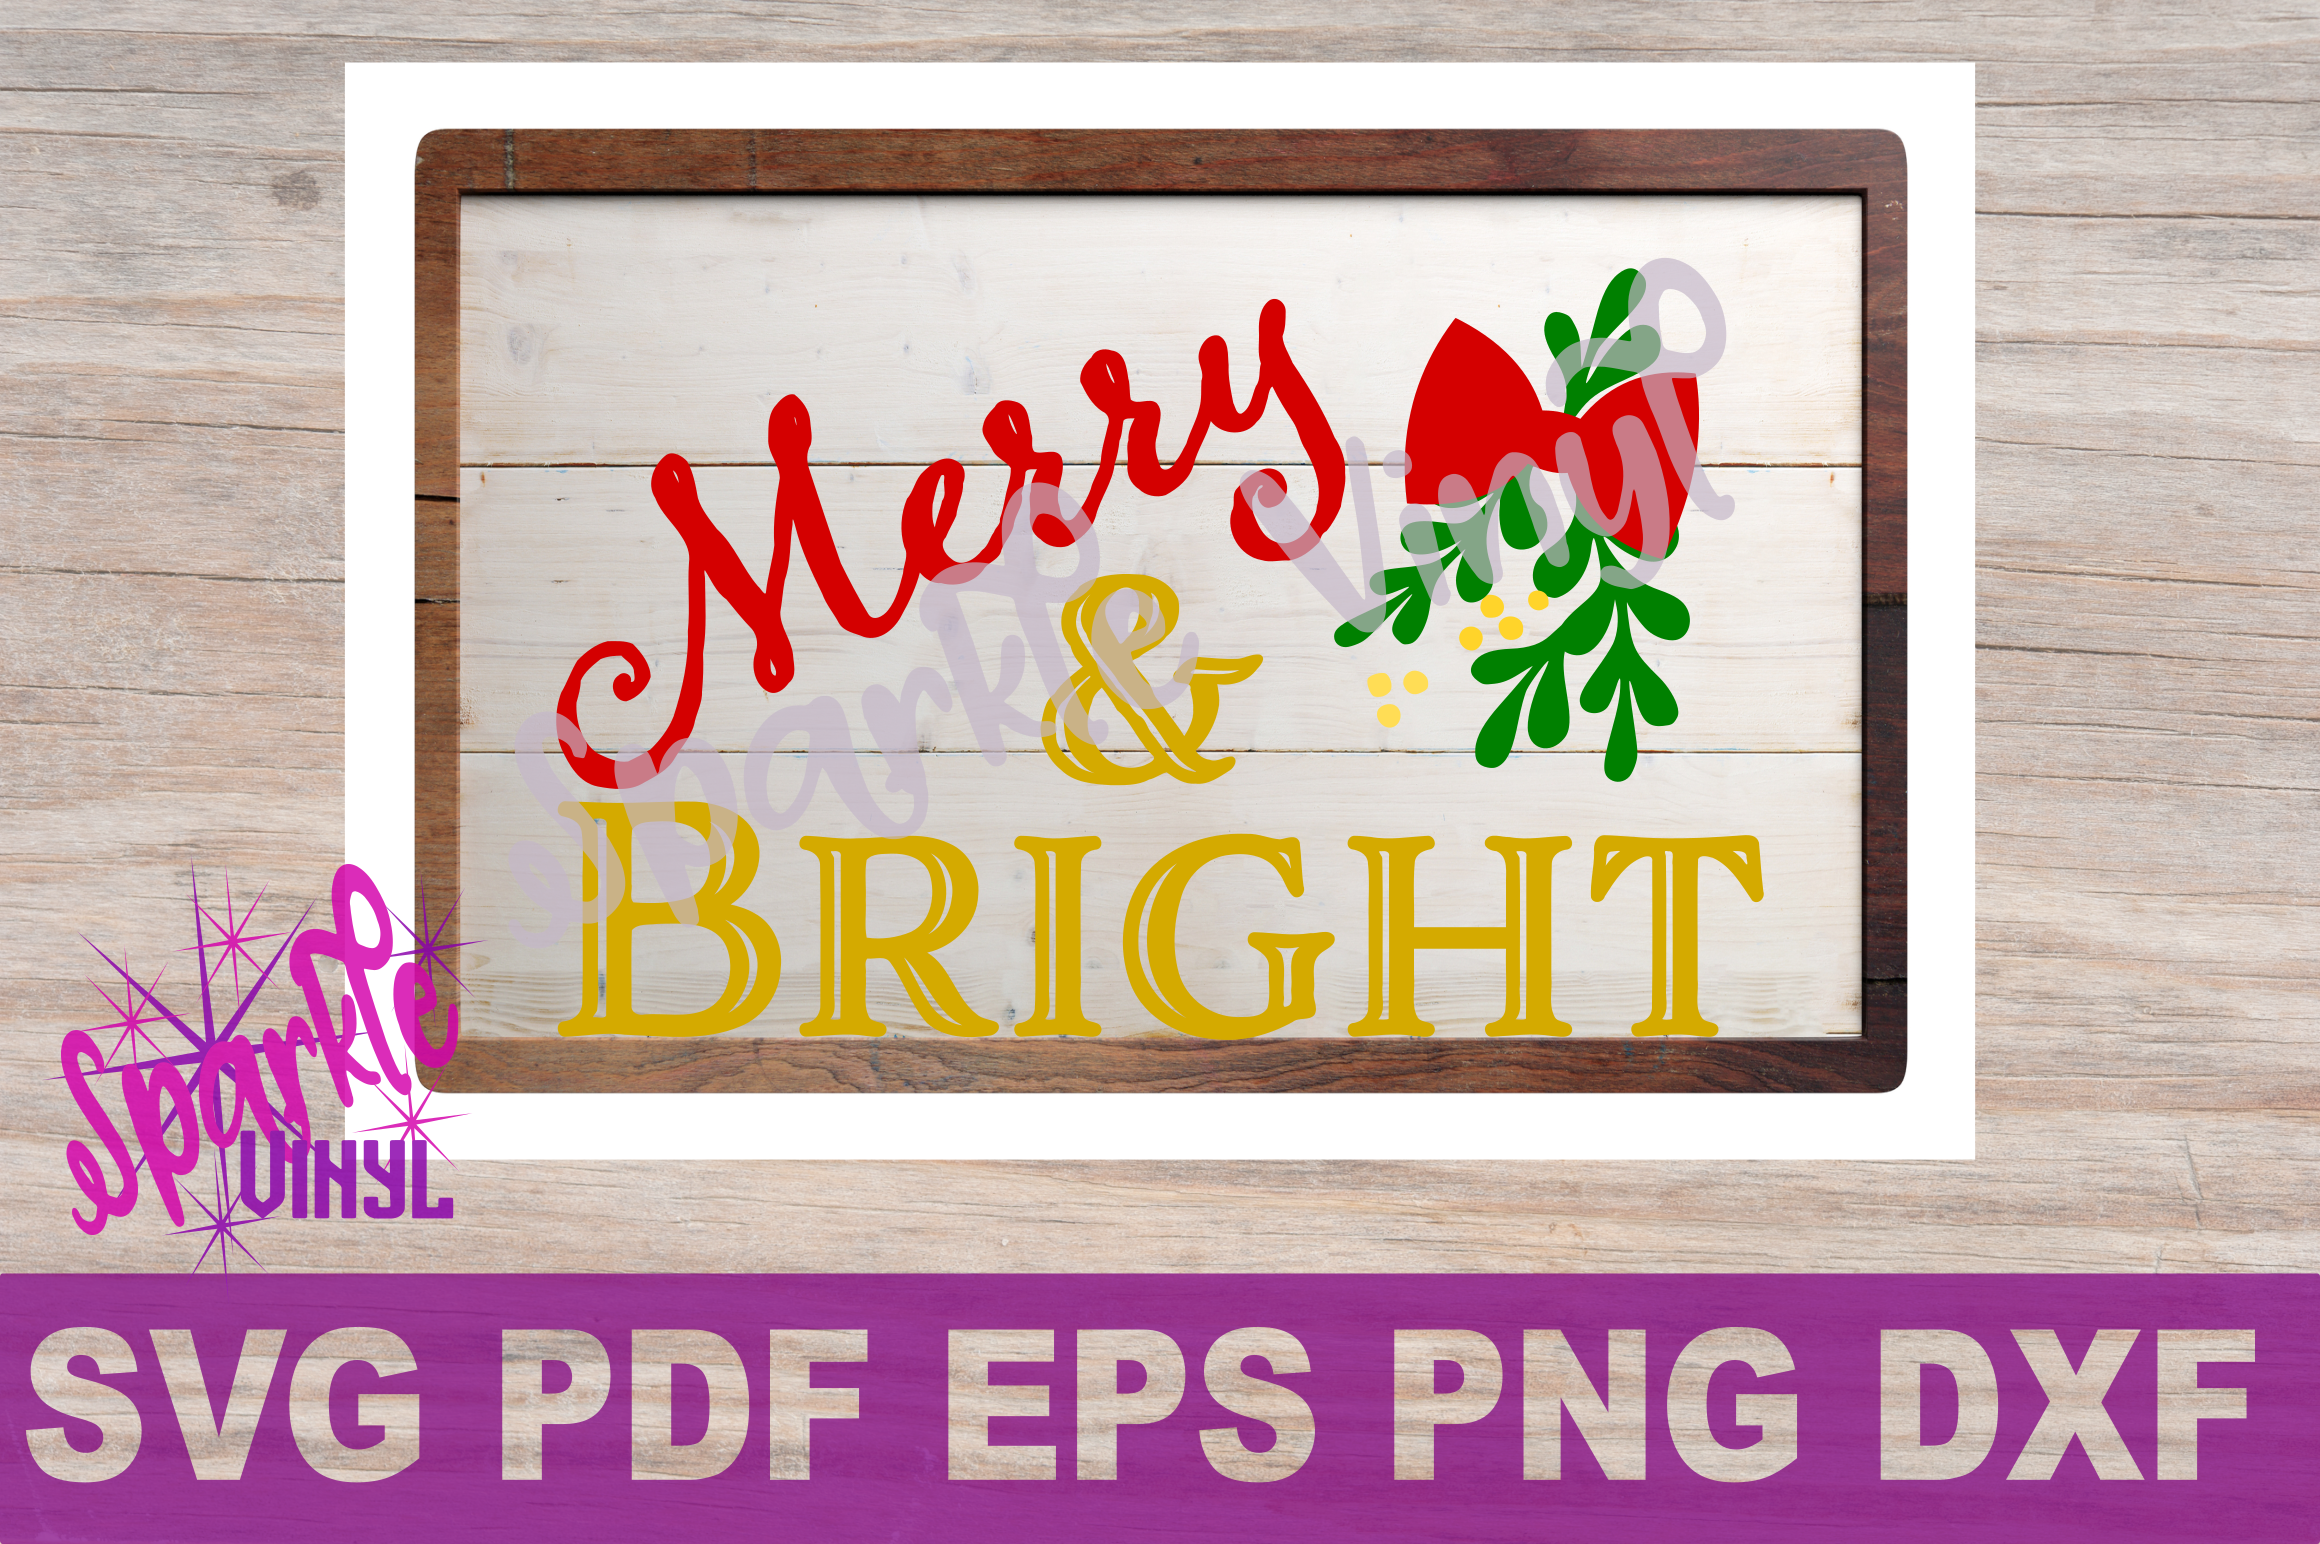 Svg Christmas Sign Stencil Bundle printable svg dxf png pdf esp files for cricut or silhouette Merry Christmas Trees Sold here Mistletoe svg example image 9